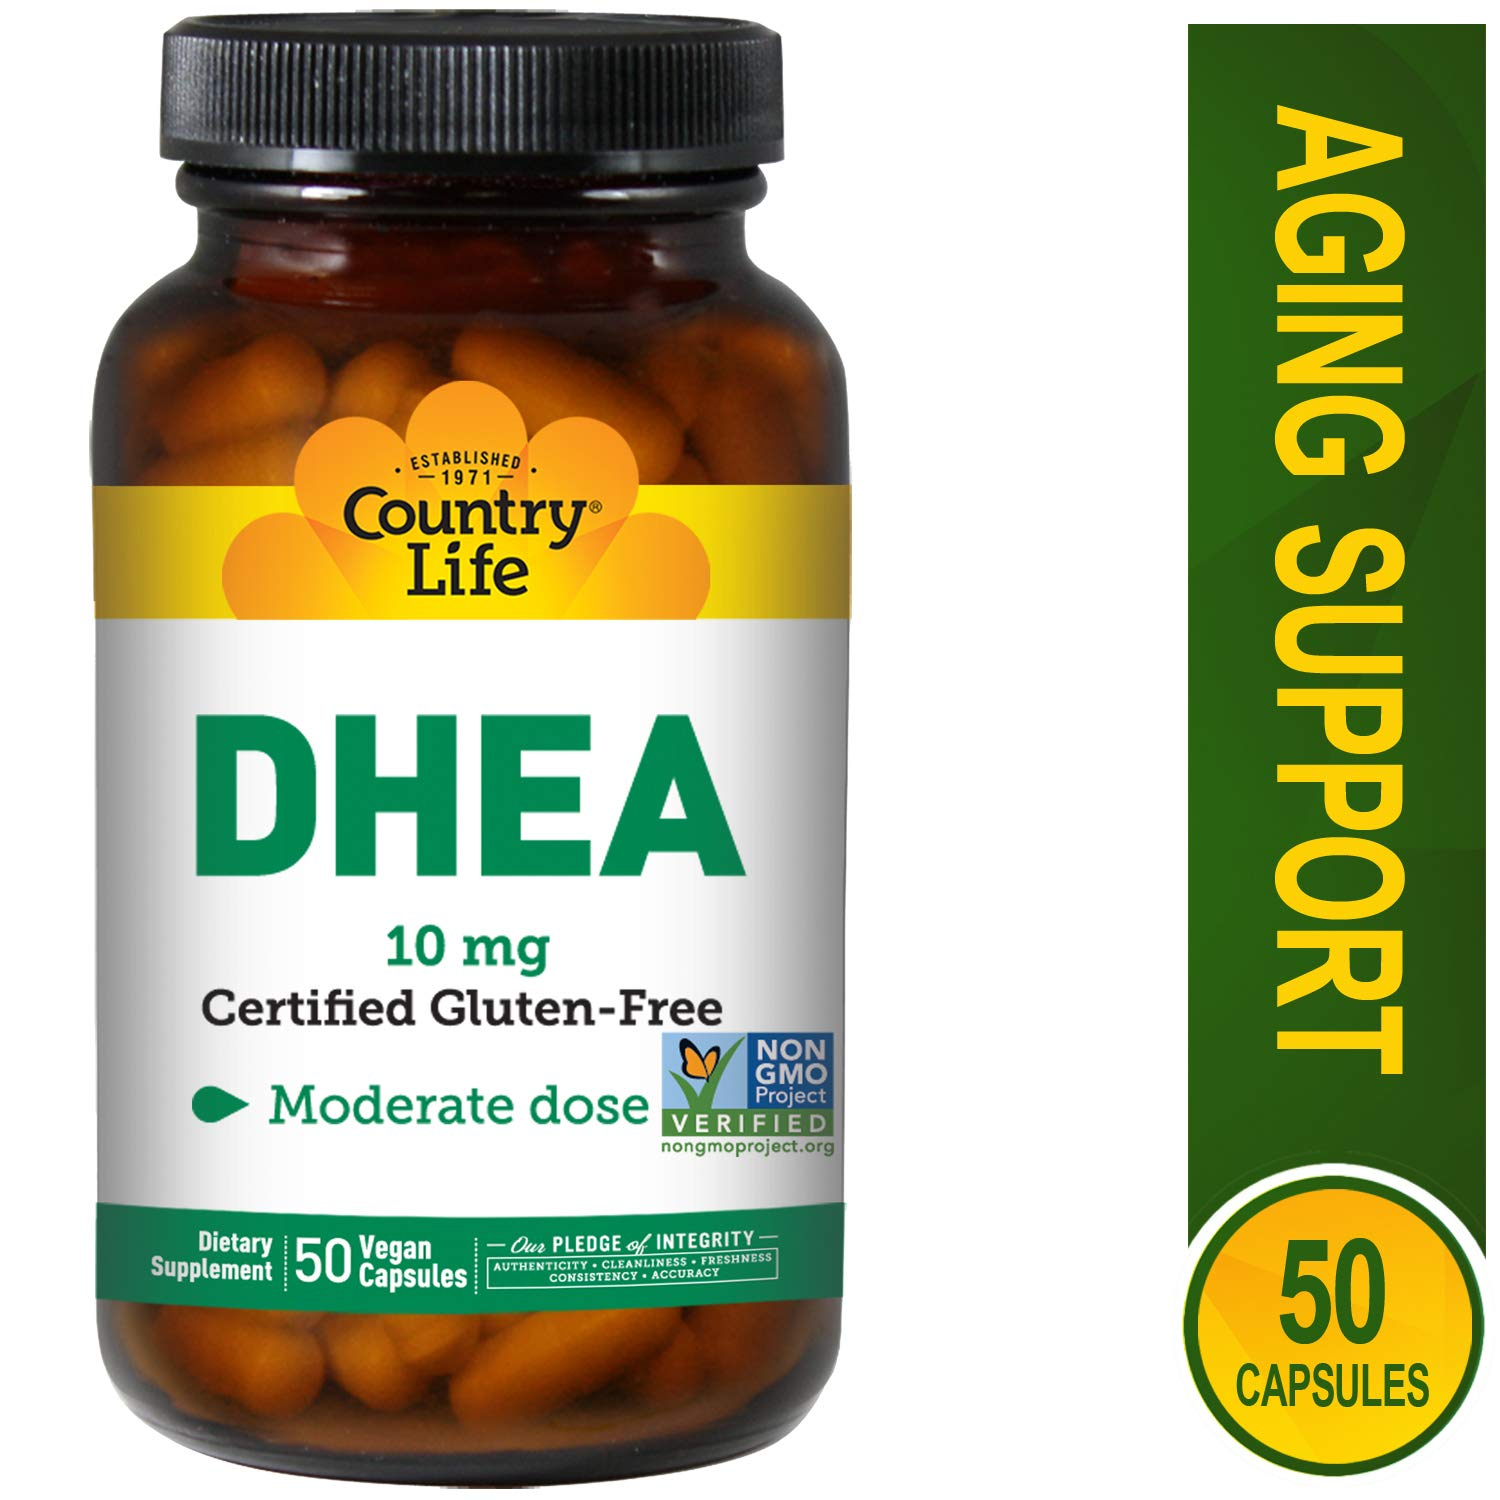 Country Life DHEA 10 mg, 50 Capsules Pack of 3